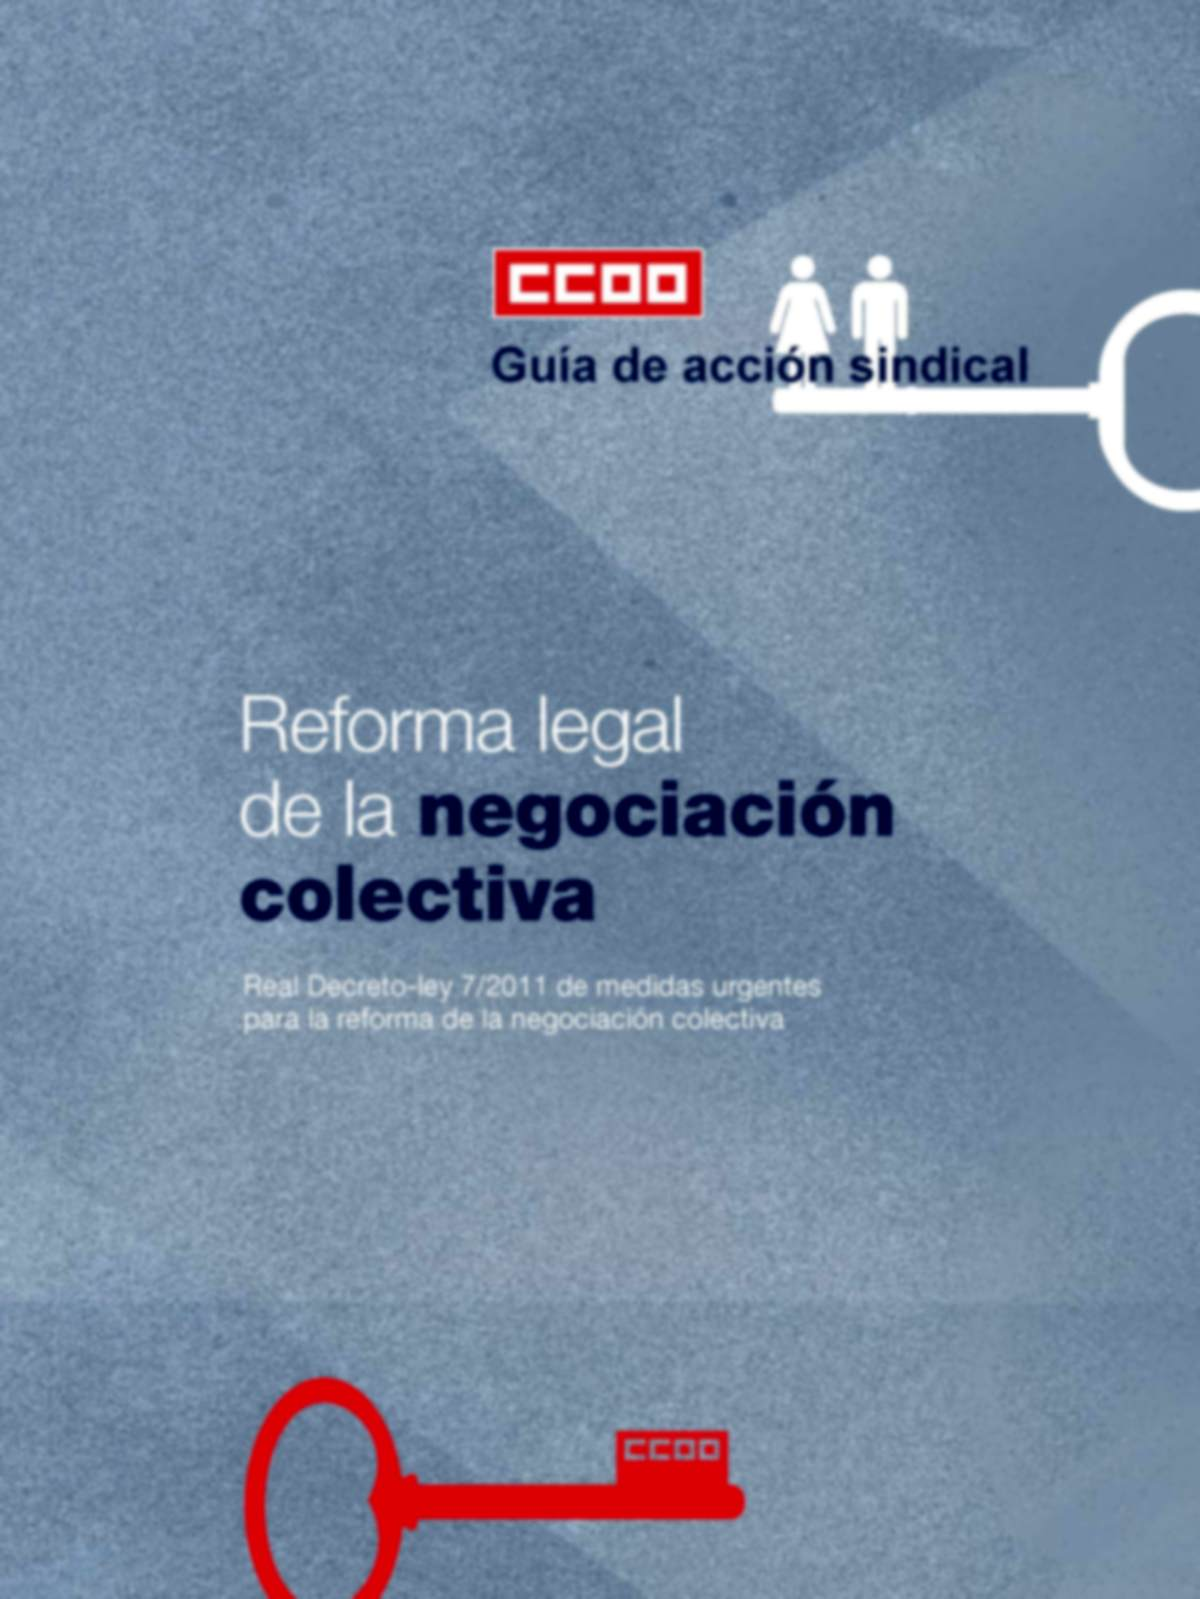 Guía de acción sindical: Reforma legal de la negociación colectiva